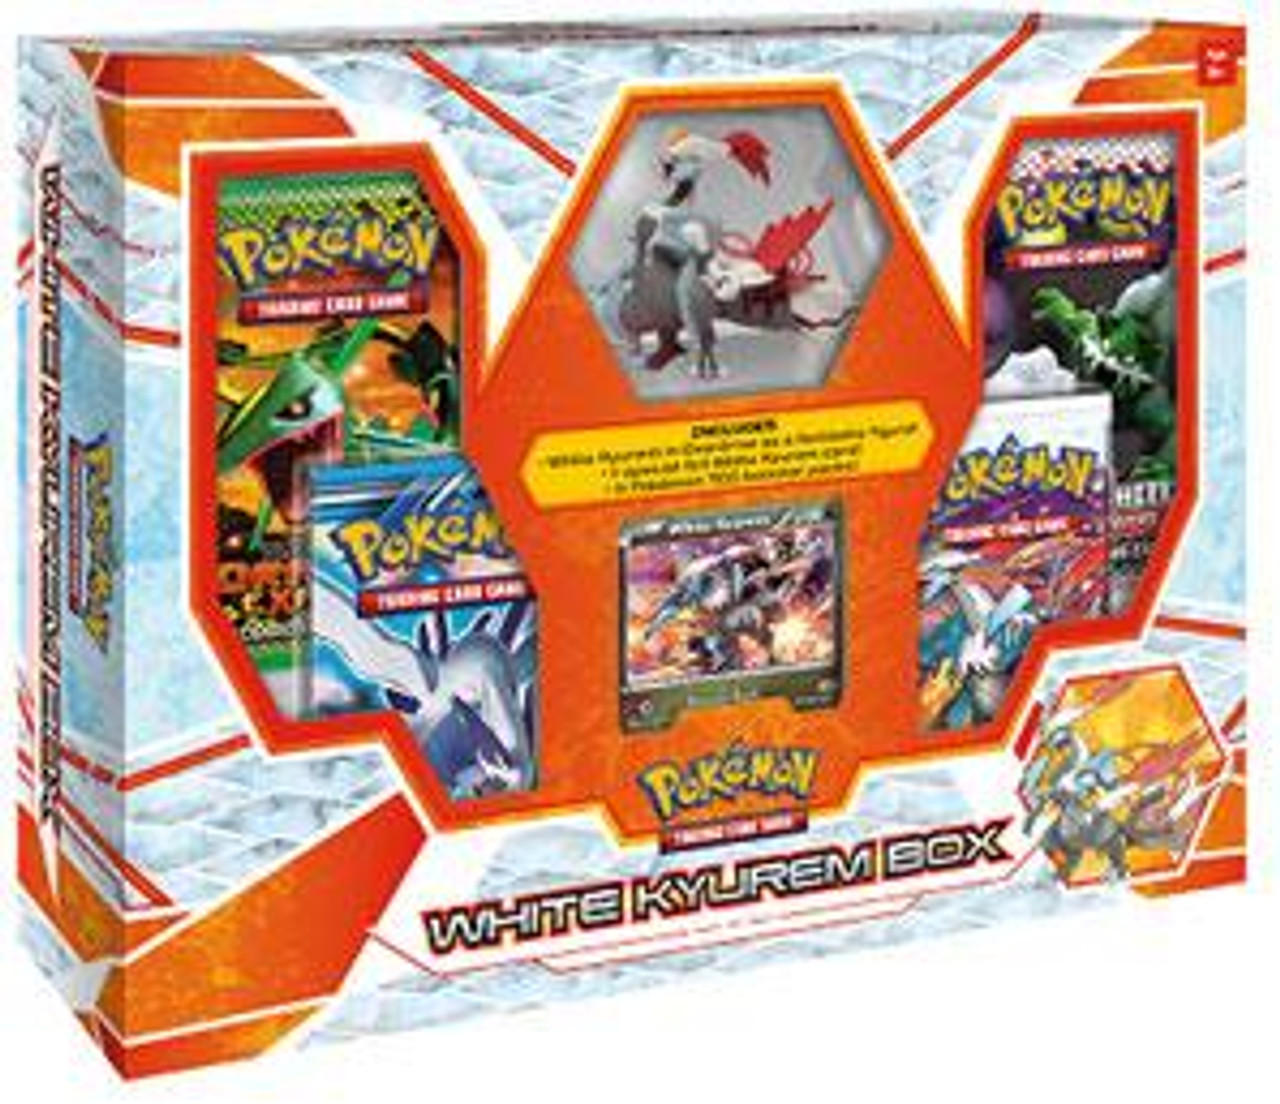 Pokemon Black & White White Kyurem Box